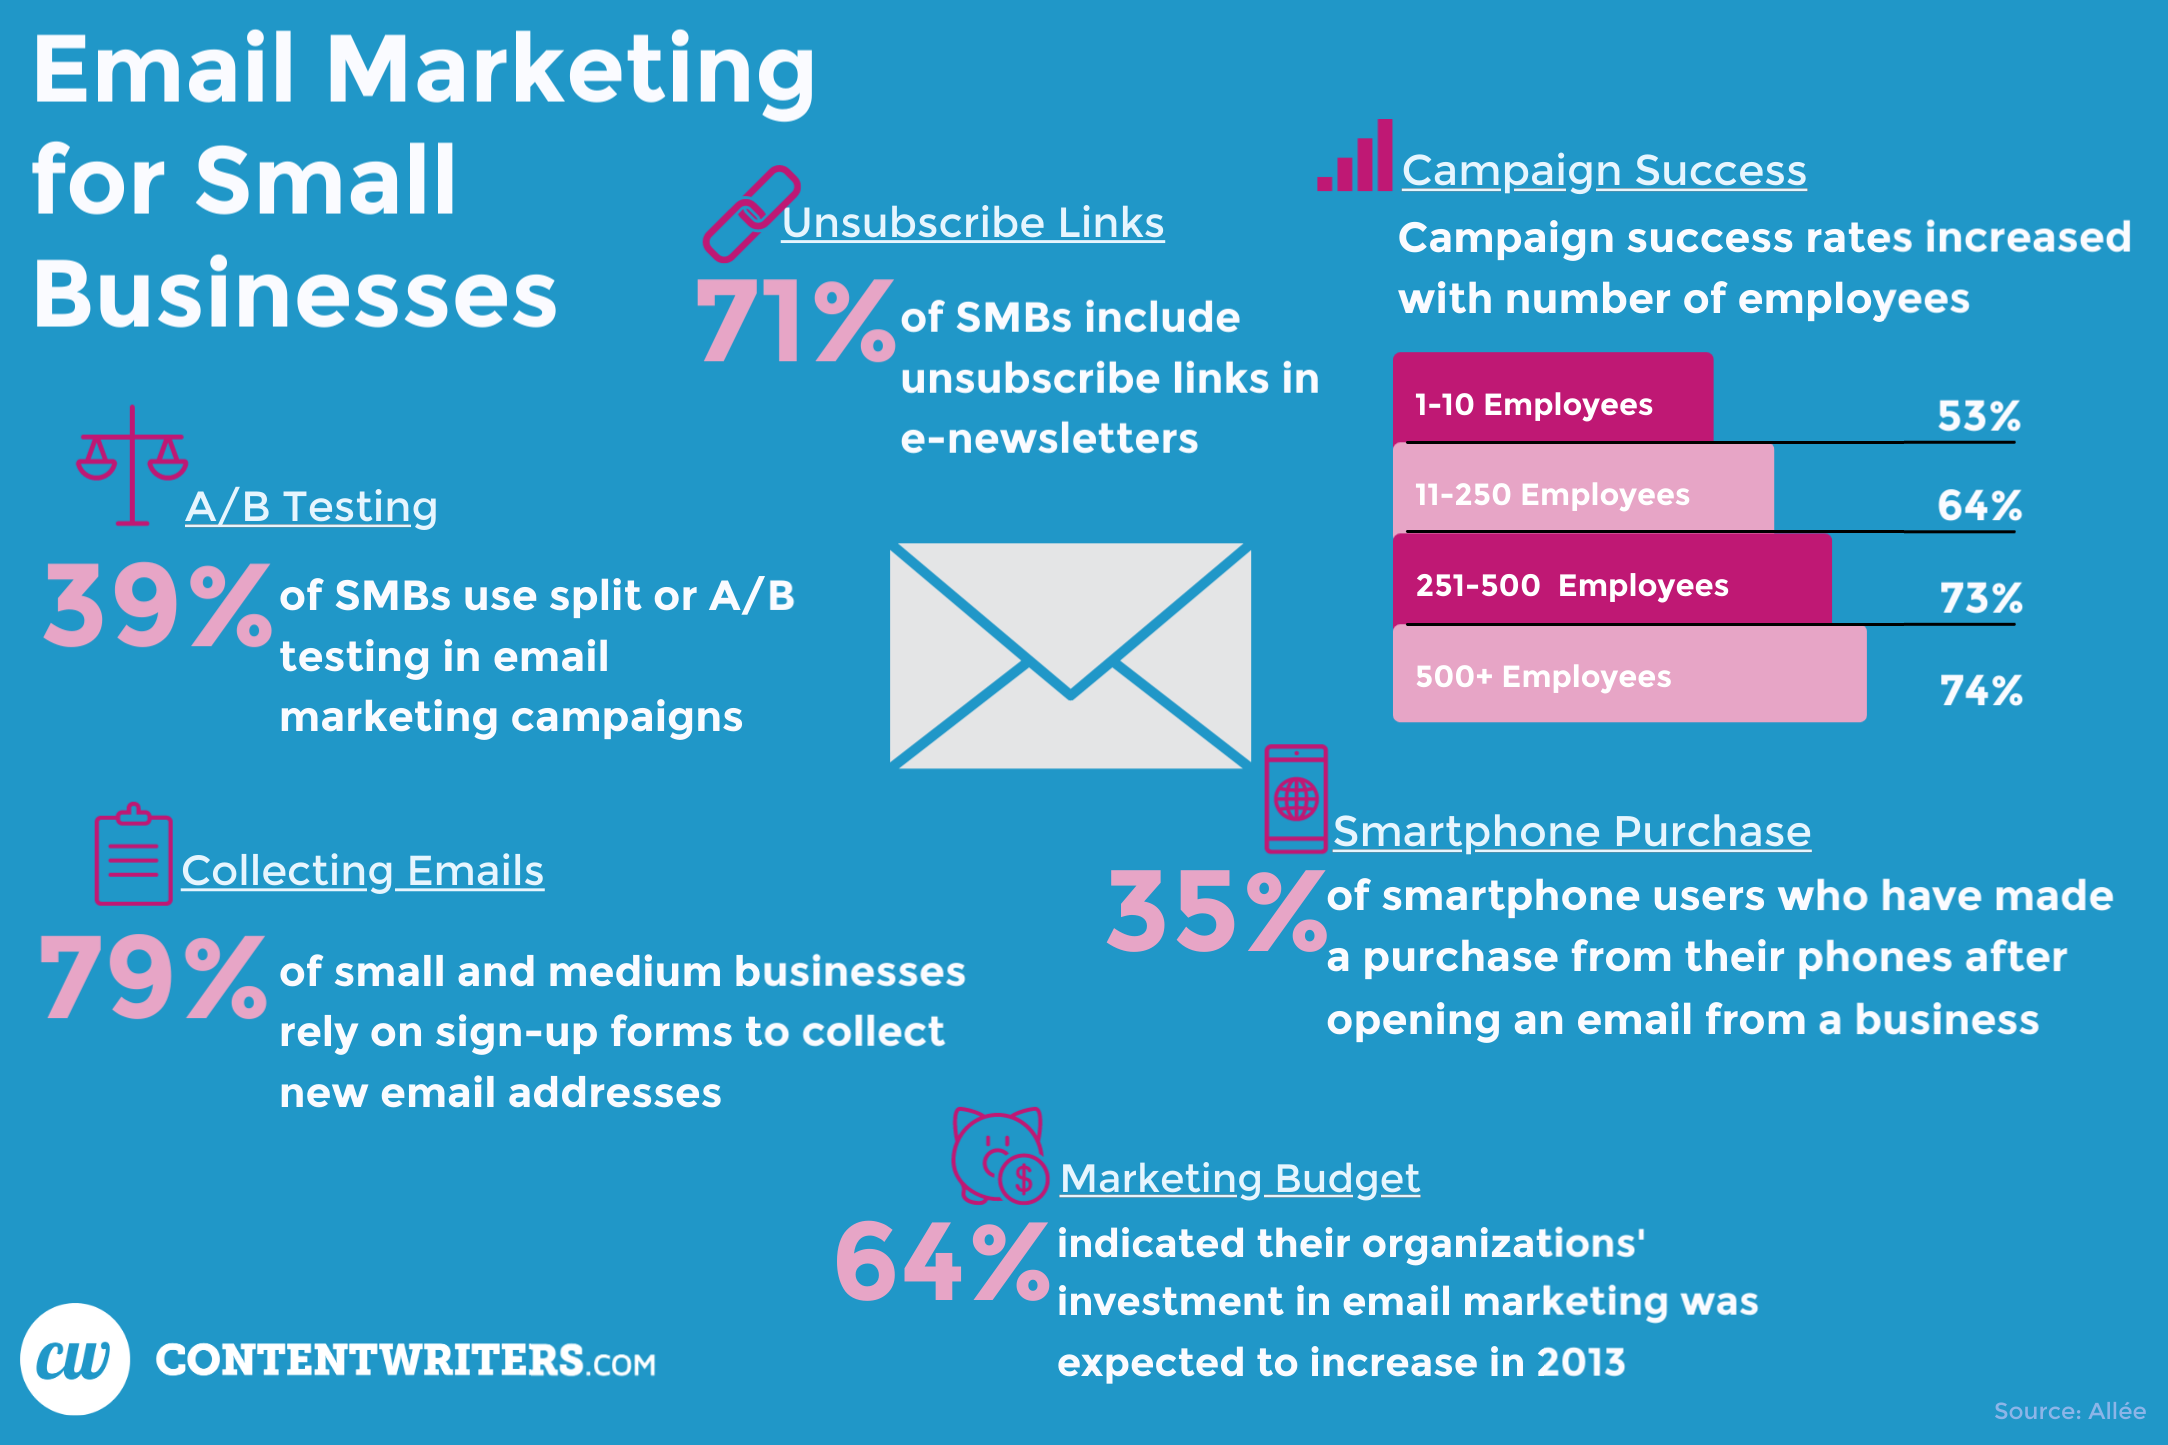 Email Marketing for Small Businesses ContentWriters